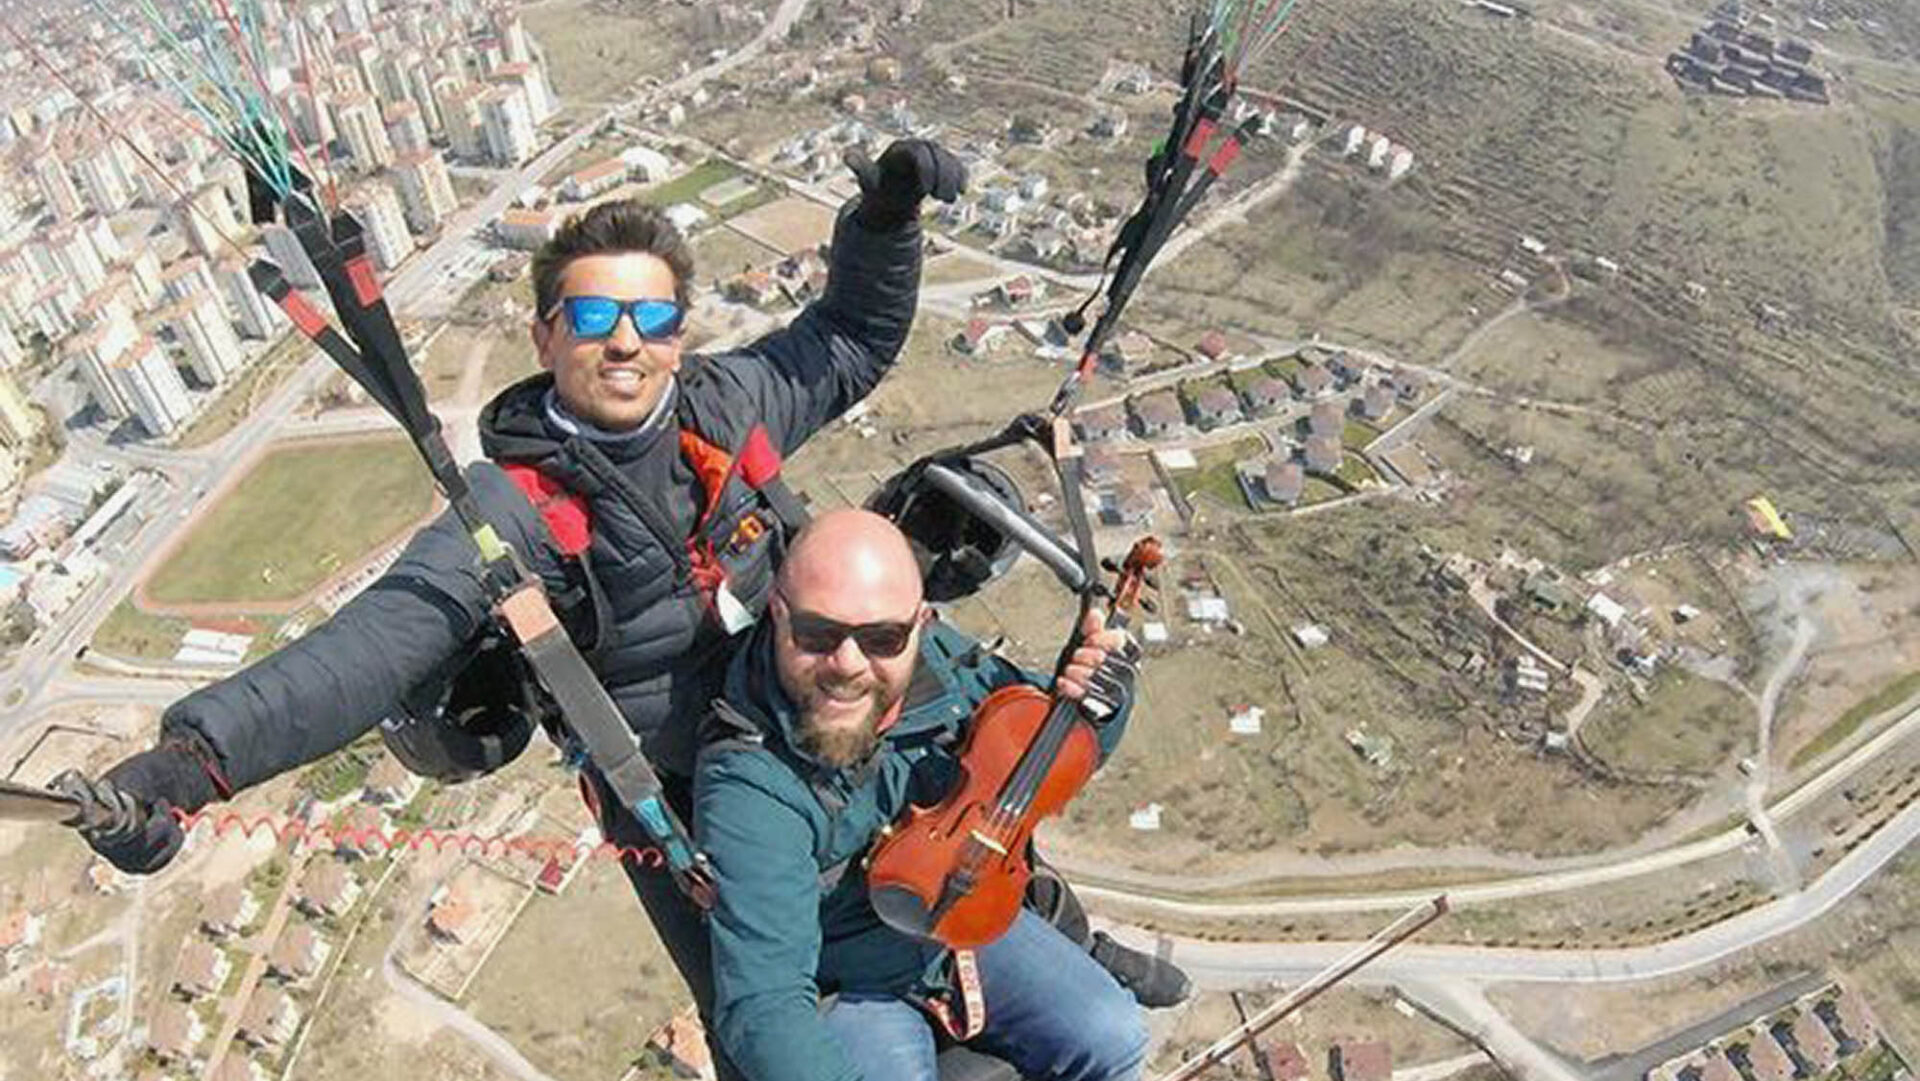 VIDEO: String And A Prayer: Nervous Paraglider Plays Violin To Soothe First Flight Nerves